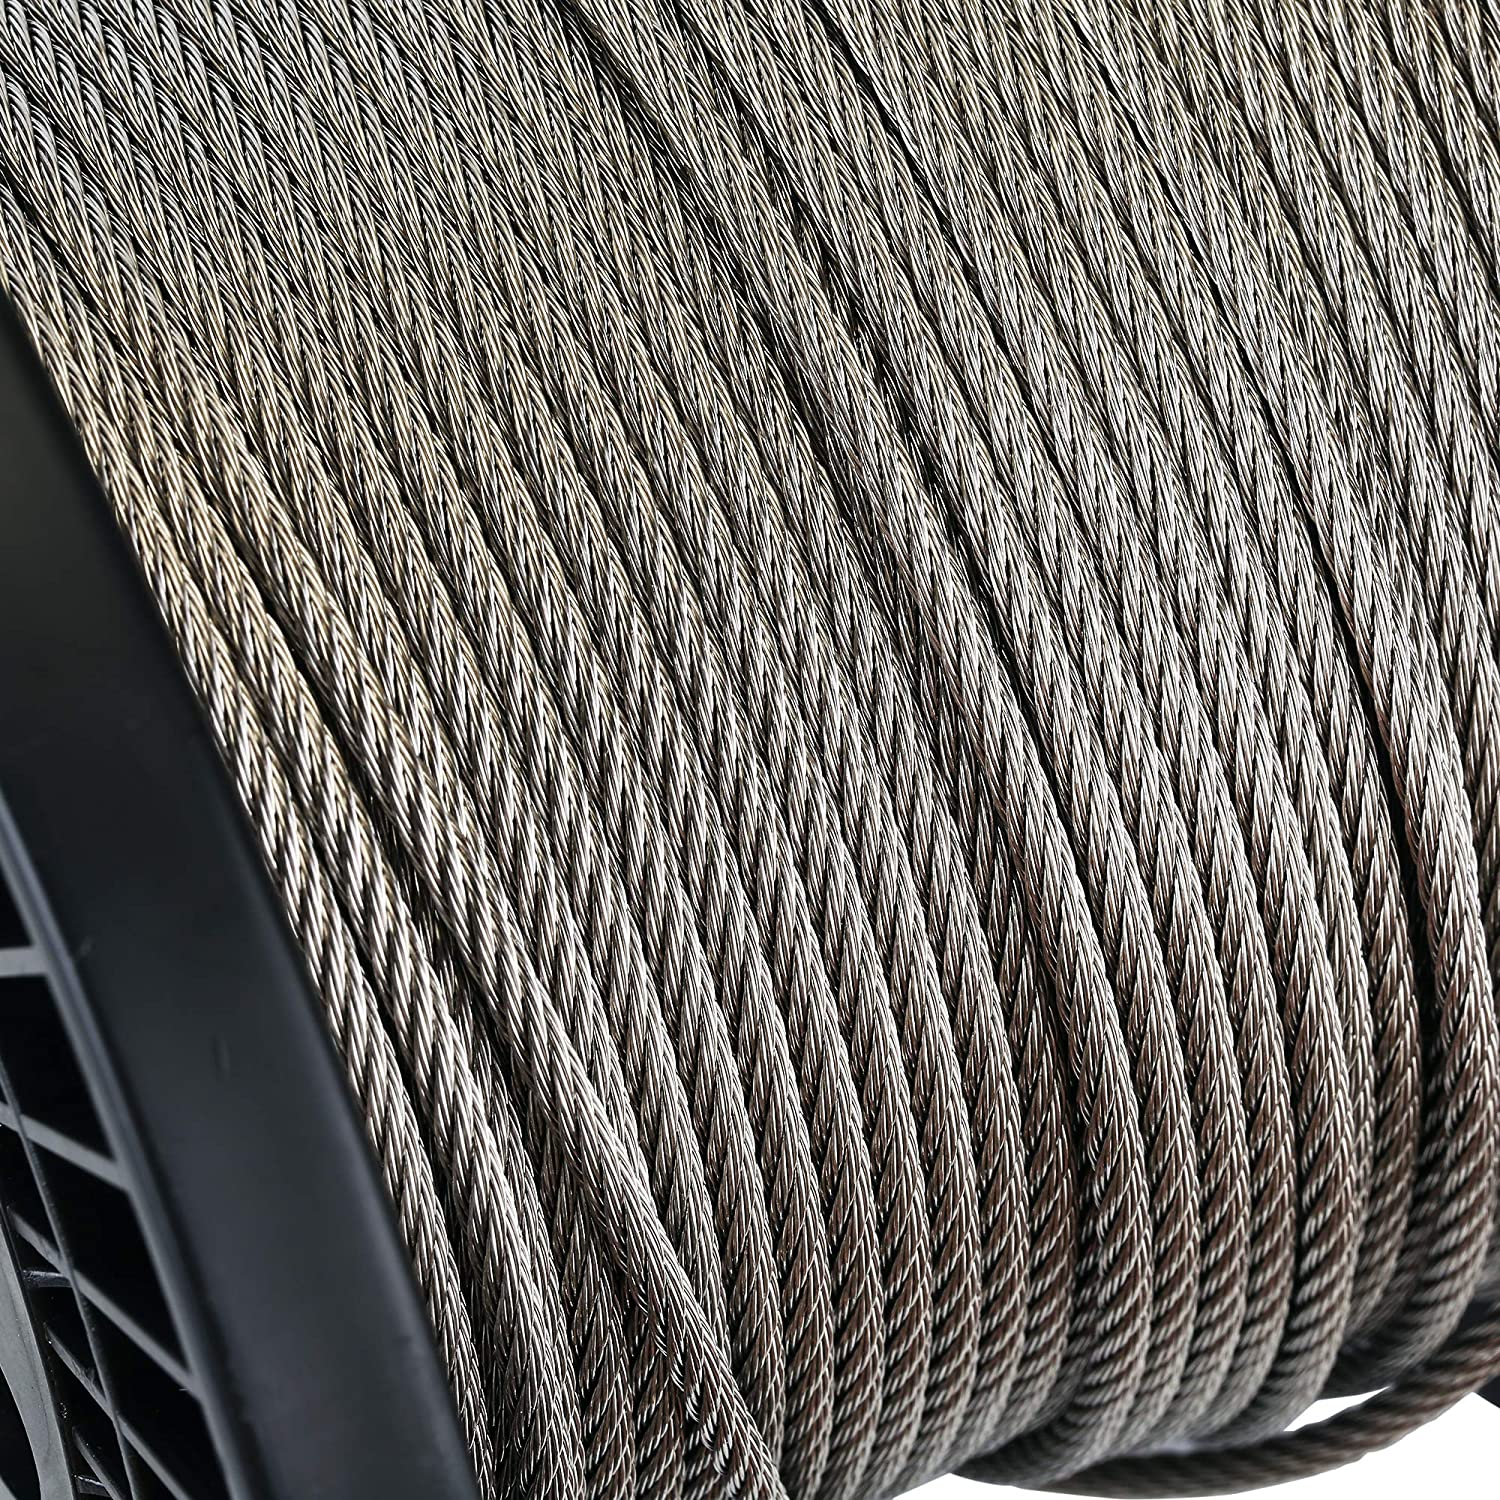 7x7 T316 Marin Grade Zoostliss 200Ft Stainless Steel Aircraft Wire Rope 1//8 for Deck Cable Railing Kit